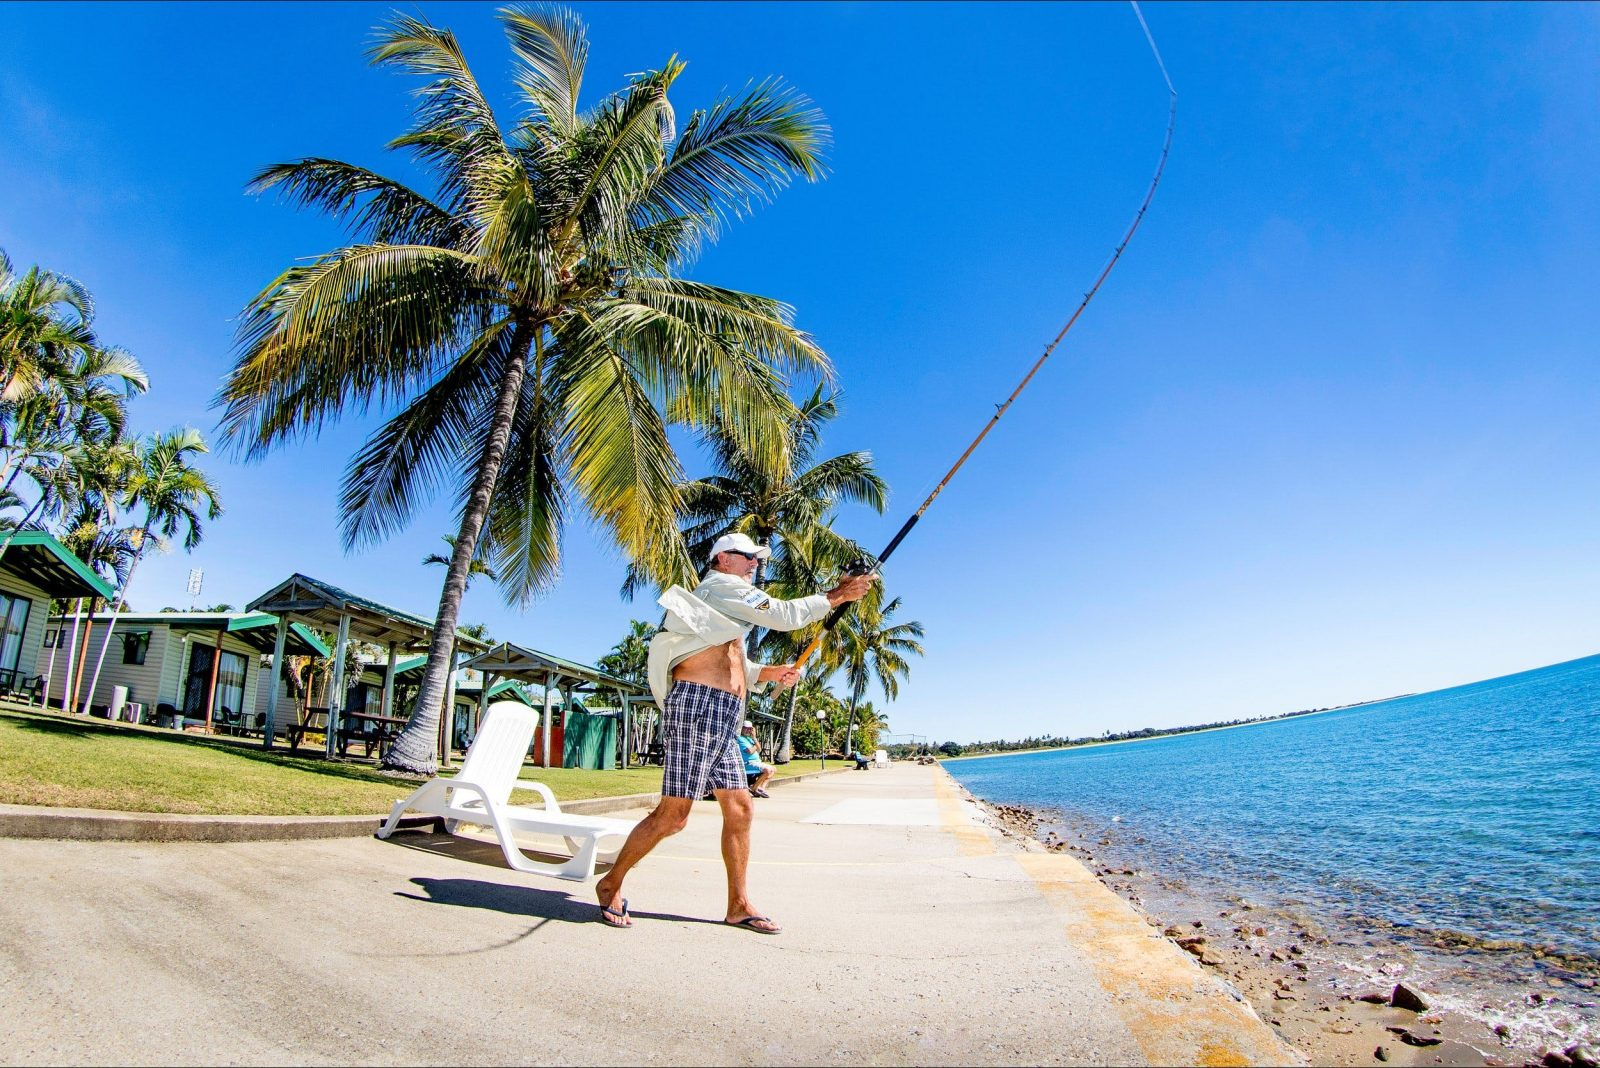 Fishing is a plenty here in Bowen. You can fish right from the breakwall just metres from your room.